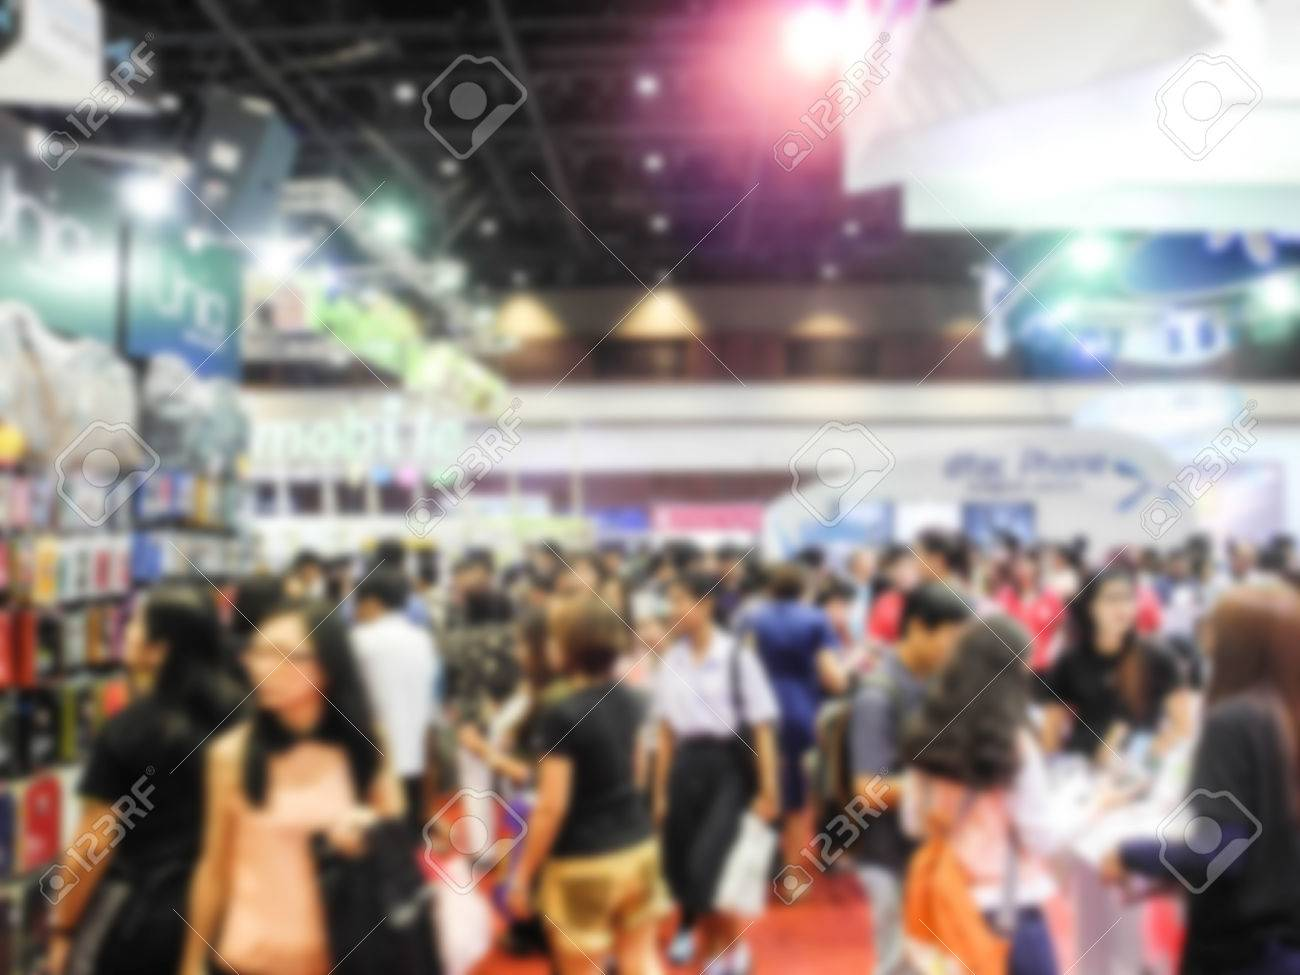 Abstract people walking in exhibition blurred background - 46695970